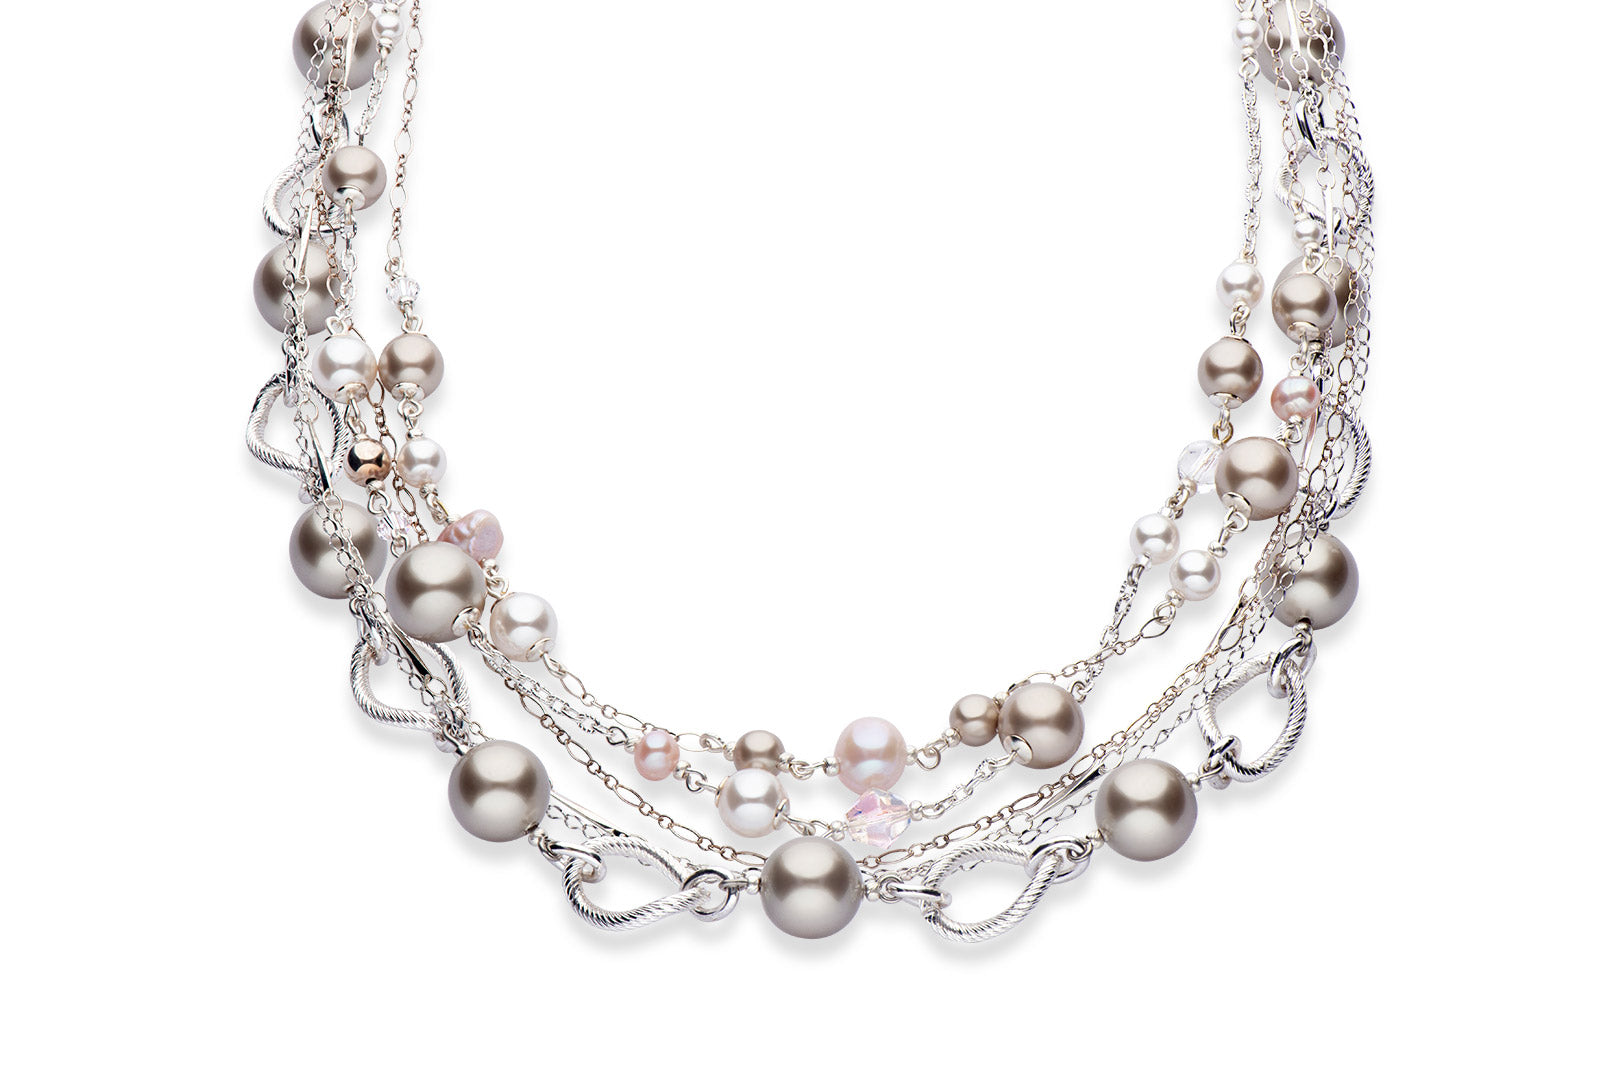 Silver, freshwater pearl and Swarovski crystal pearl necklace